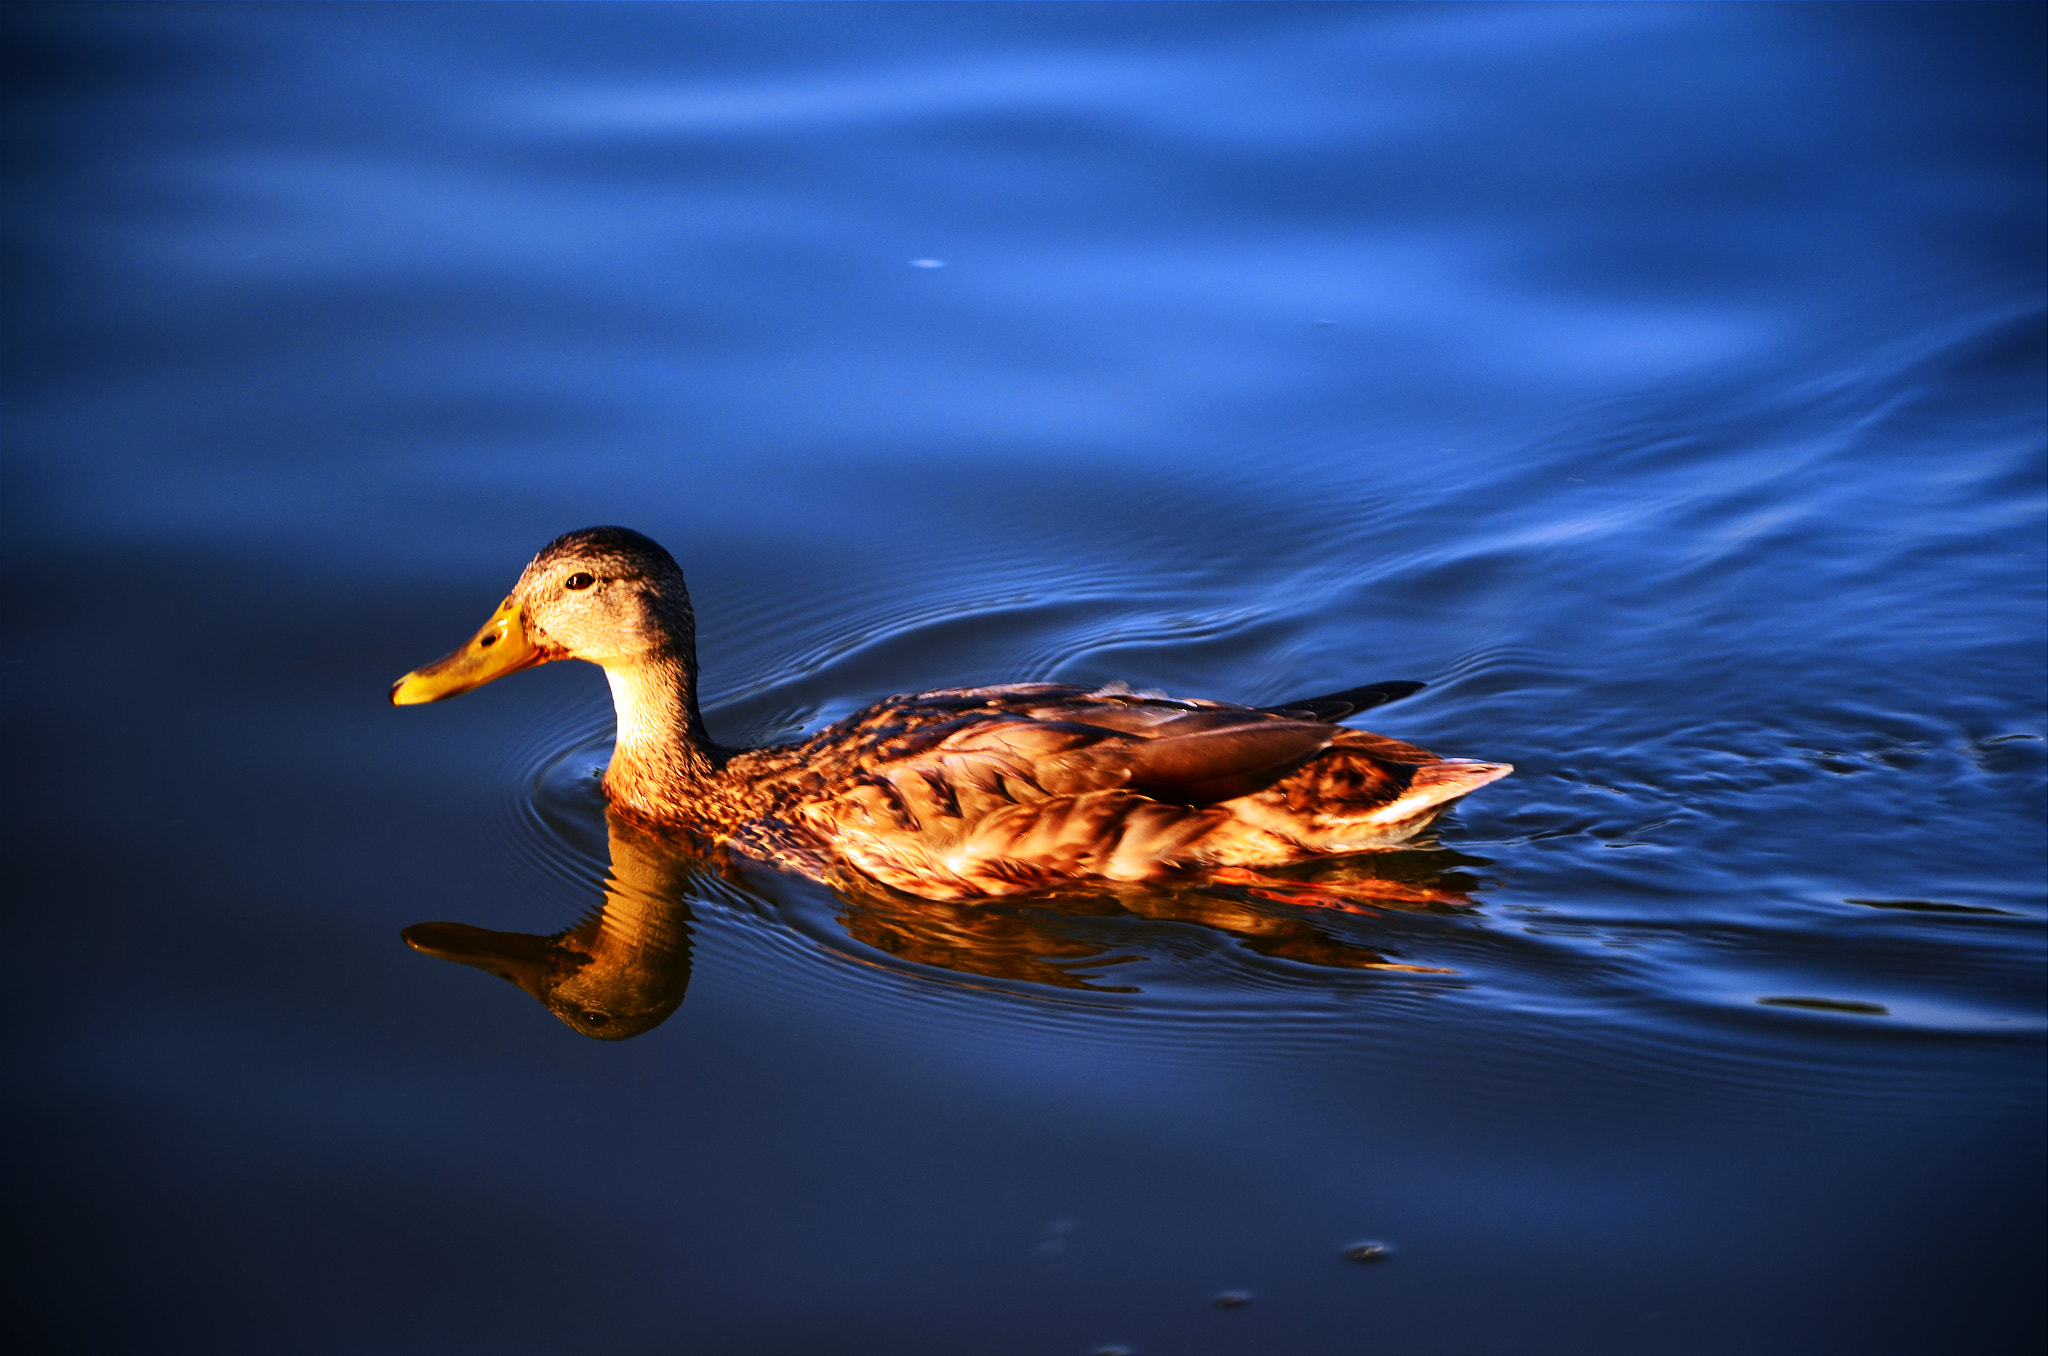 Photograph 'Ducky' by Alexander Brown on 500px